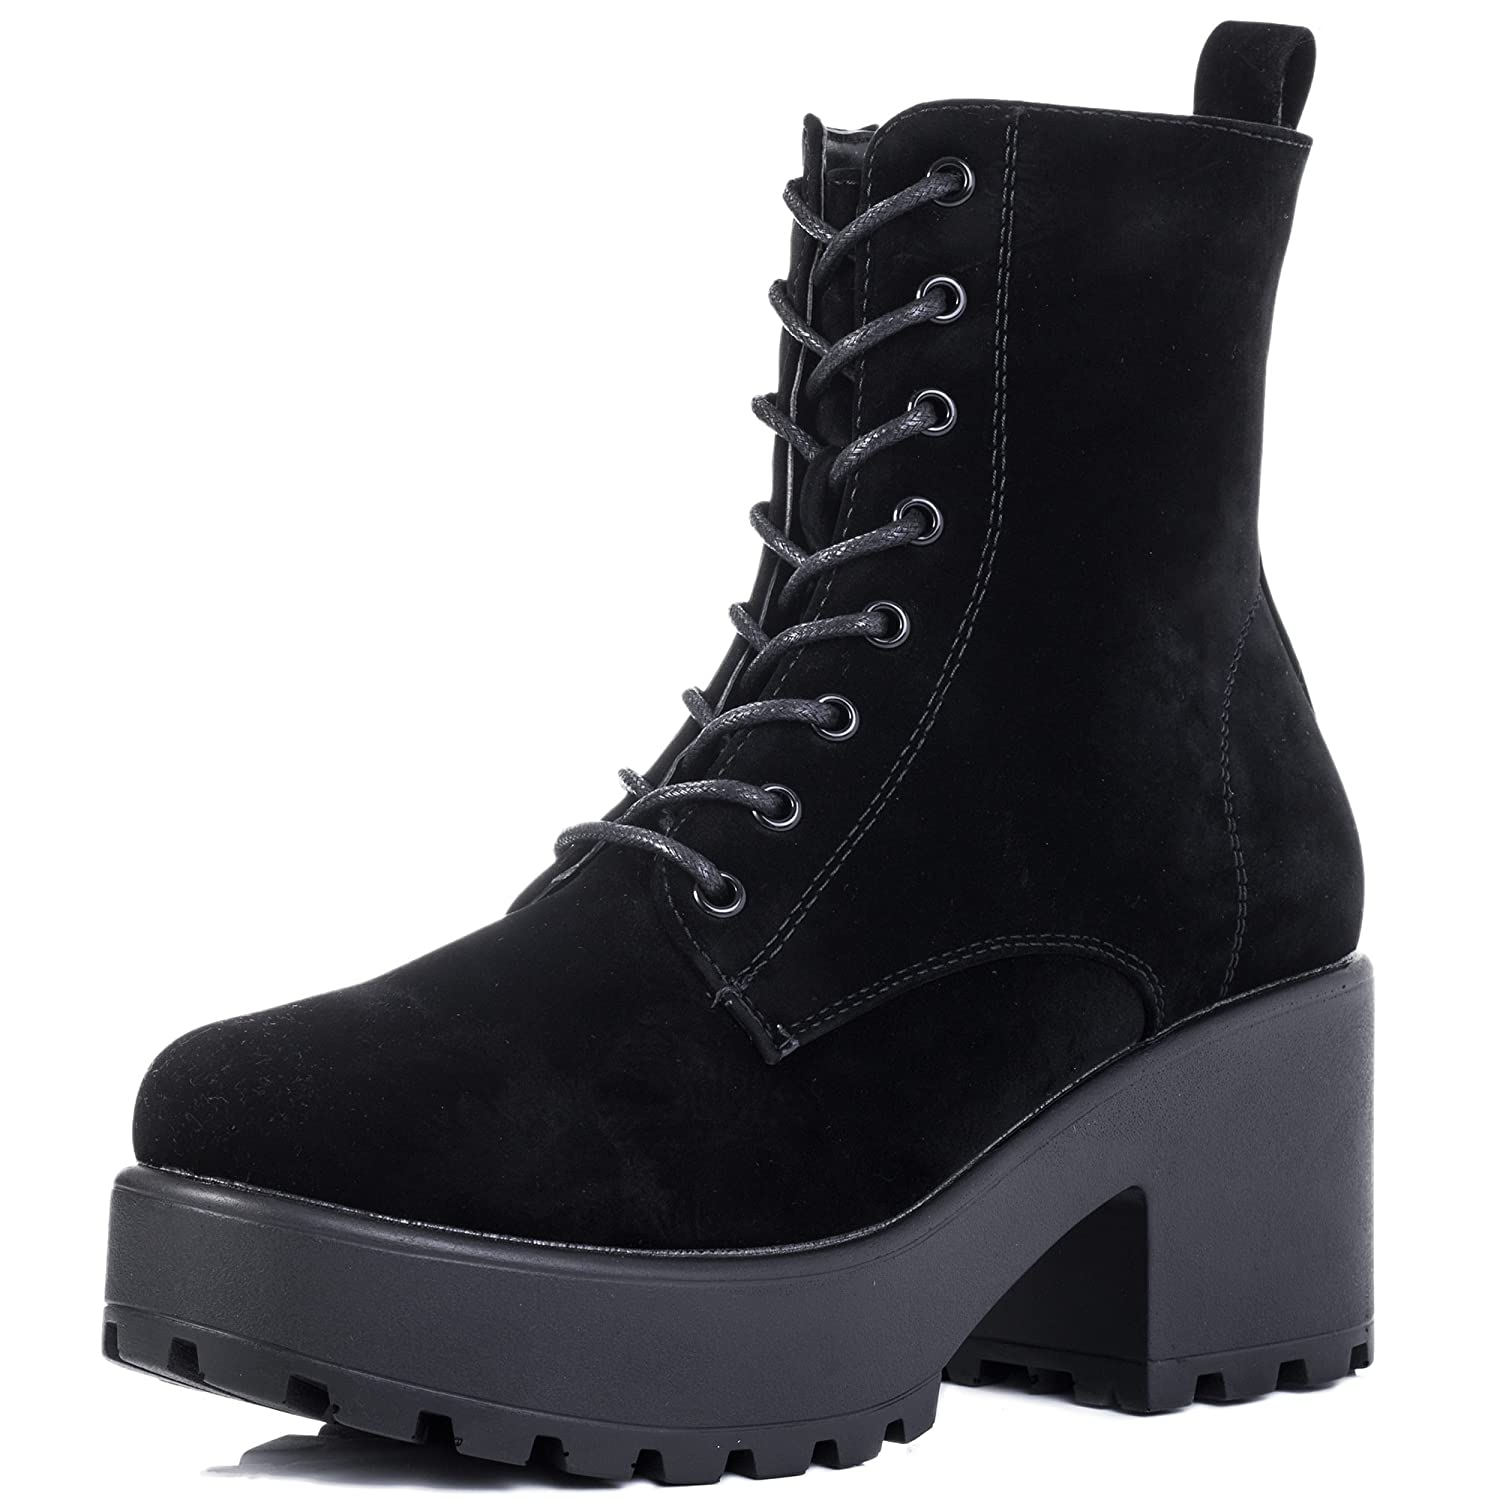 Spylovebuy Shotgun Block Heel Cleated Sole Lace up Platform Ankle Boots B077TWYPMX 10 B(M) US|Black Suede Style